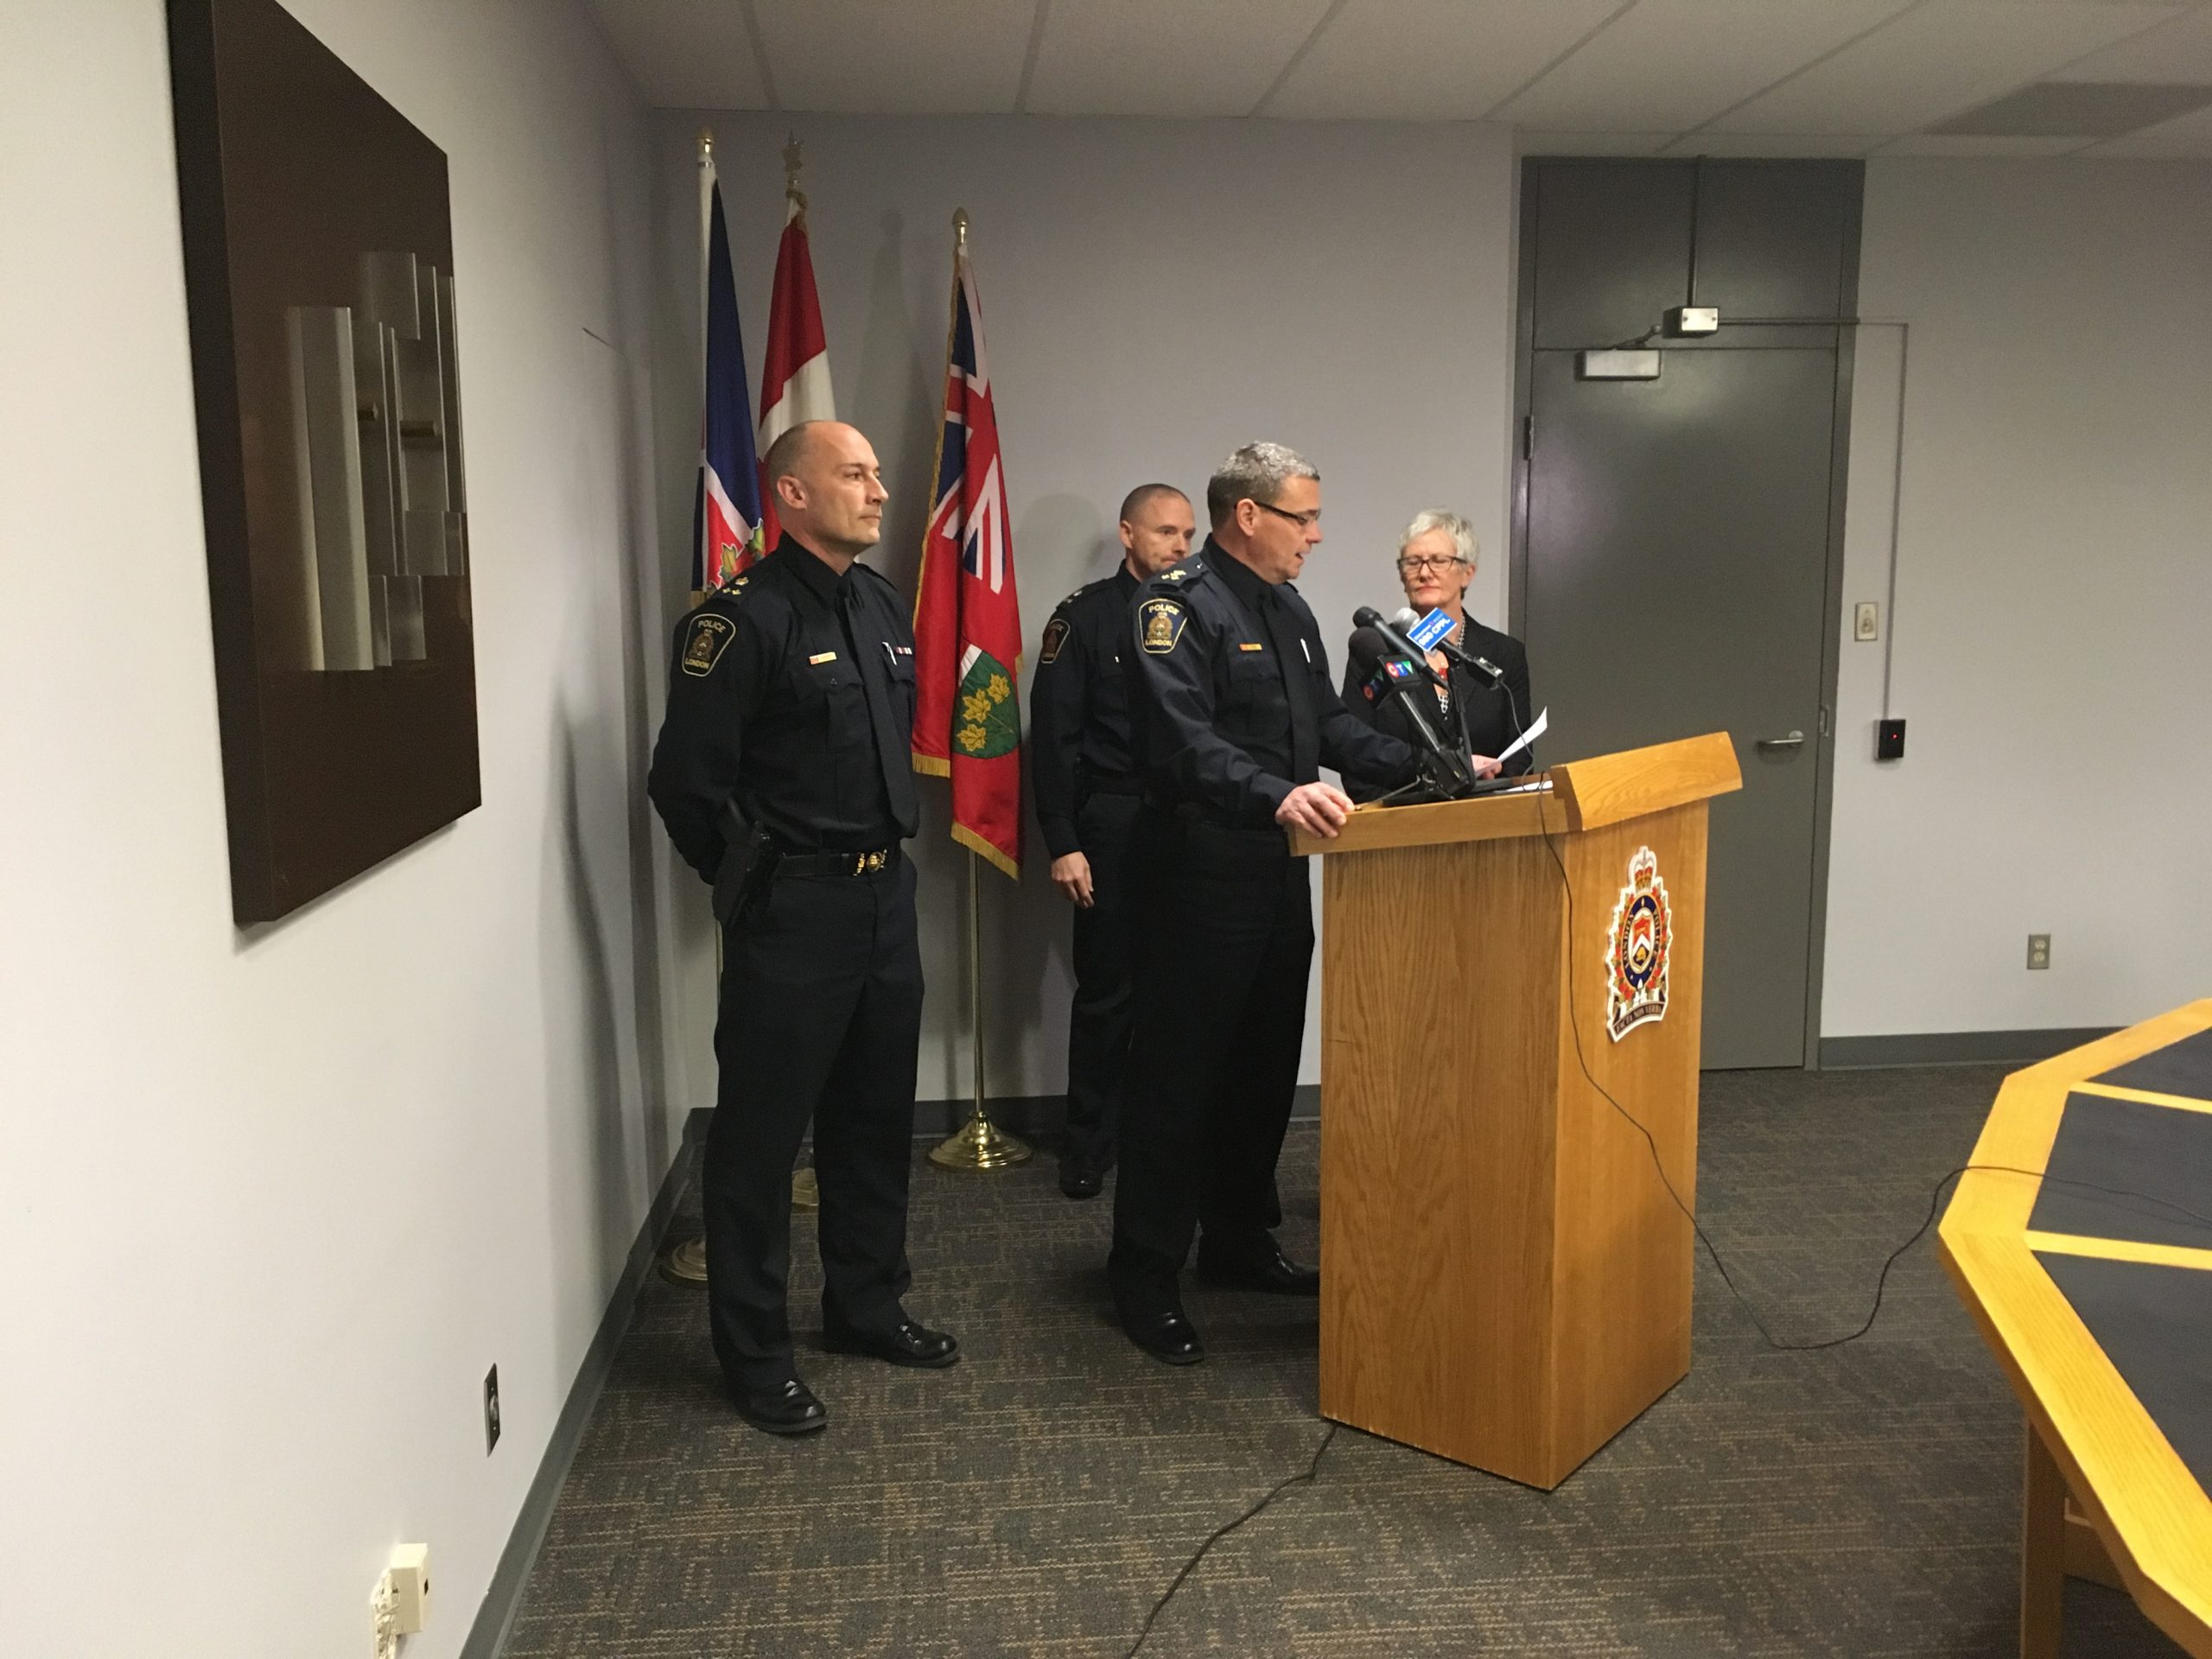 London police vows for transparency with officers facing criminal charges